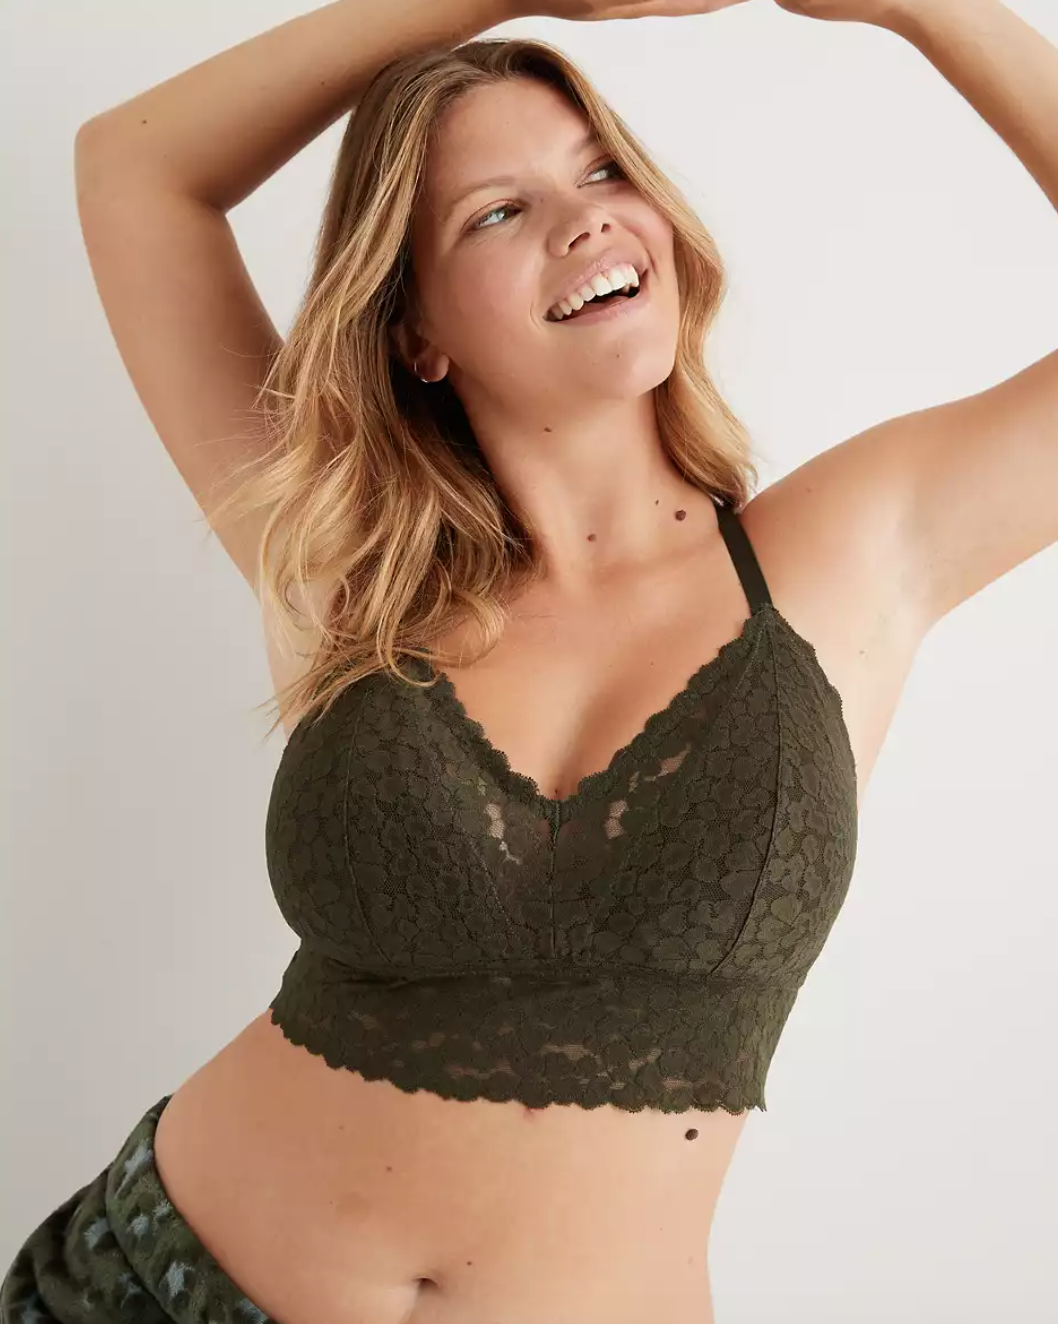 a model in an olive green lace bralette